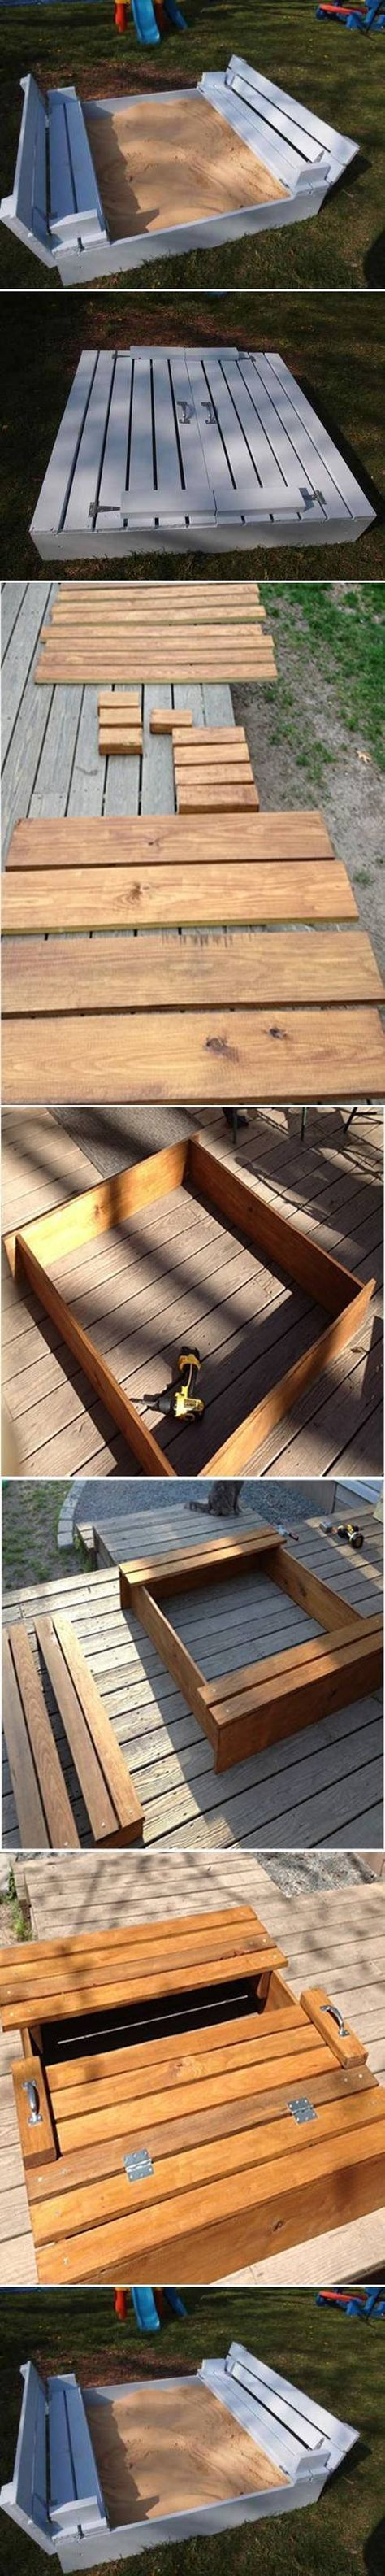 diy sandbox for kids - Sandbox Design Ideas